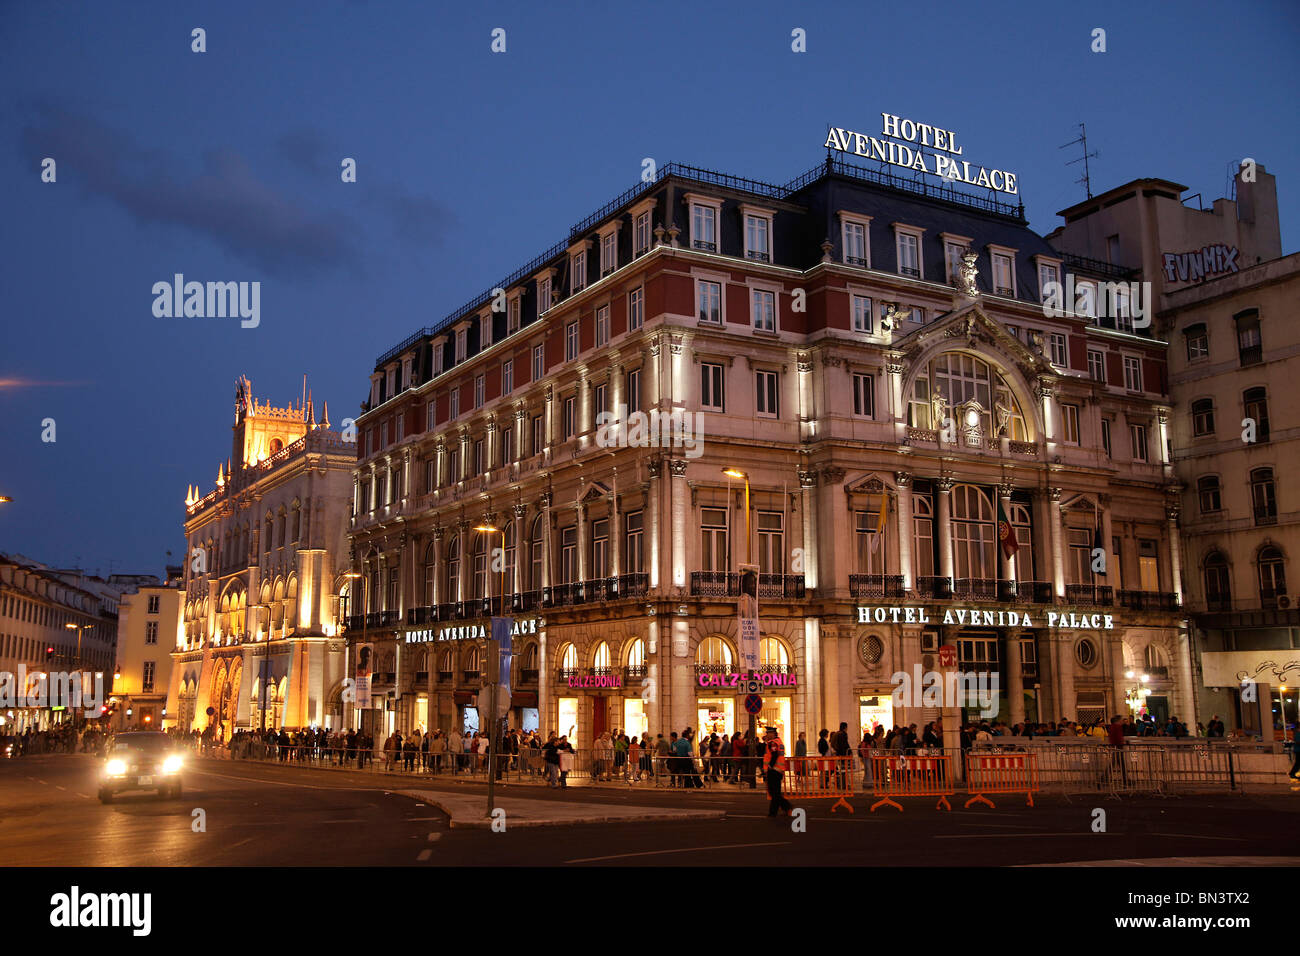 Hotel Avenida Palace Hotel Avenida Palace In Lisbon At Night Portugal Europe Stock